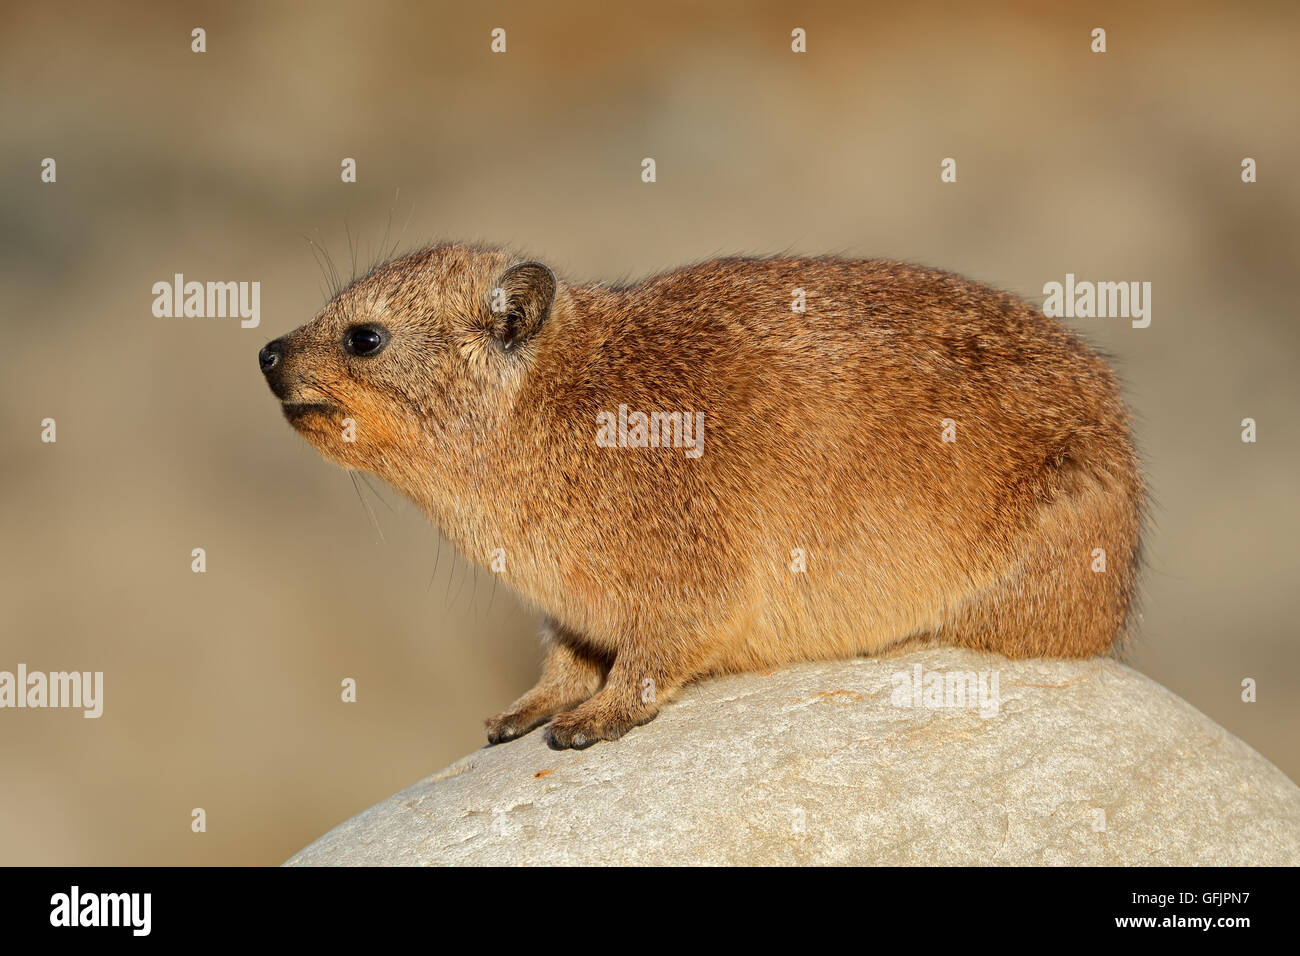 Rock hyrax (Procavia capensis) basking on a rock, South Africa - Stock Image